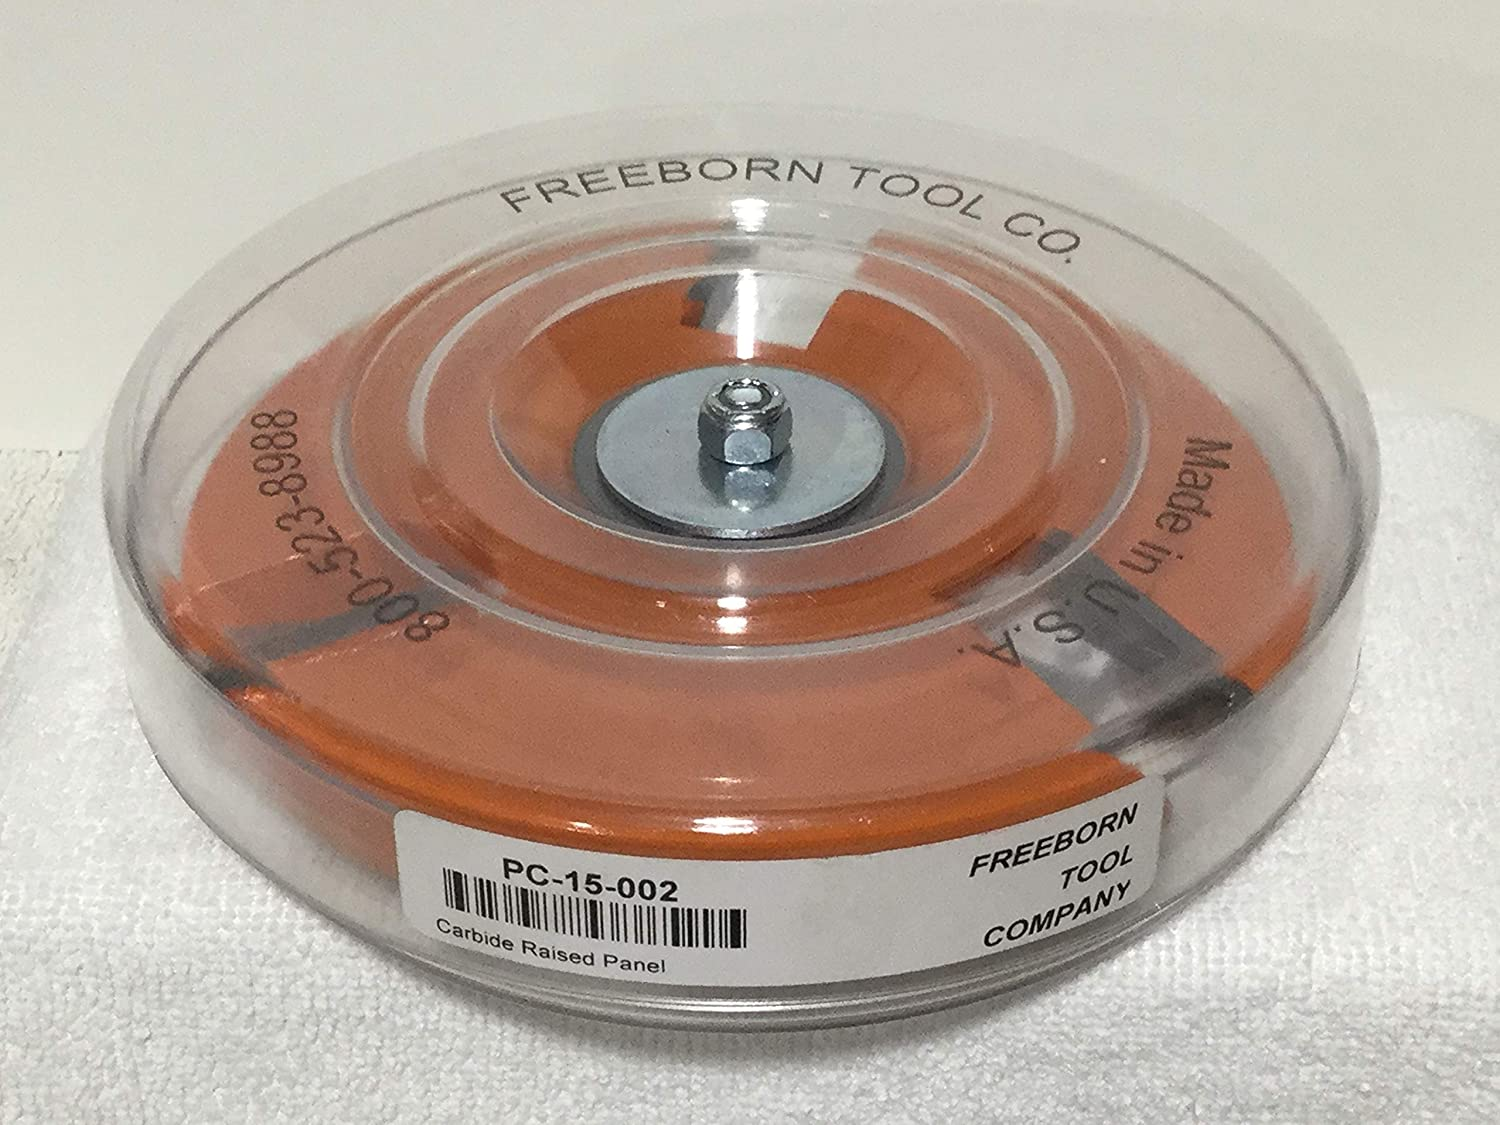 Freeborn PC-15-002 OFFicial store SEAL limited product